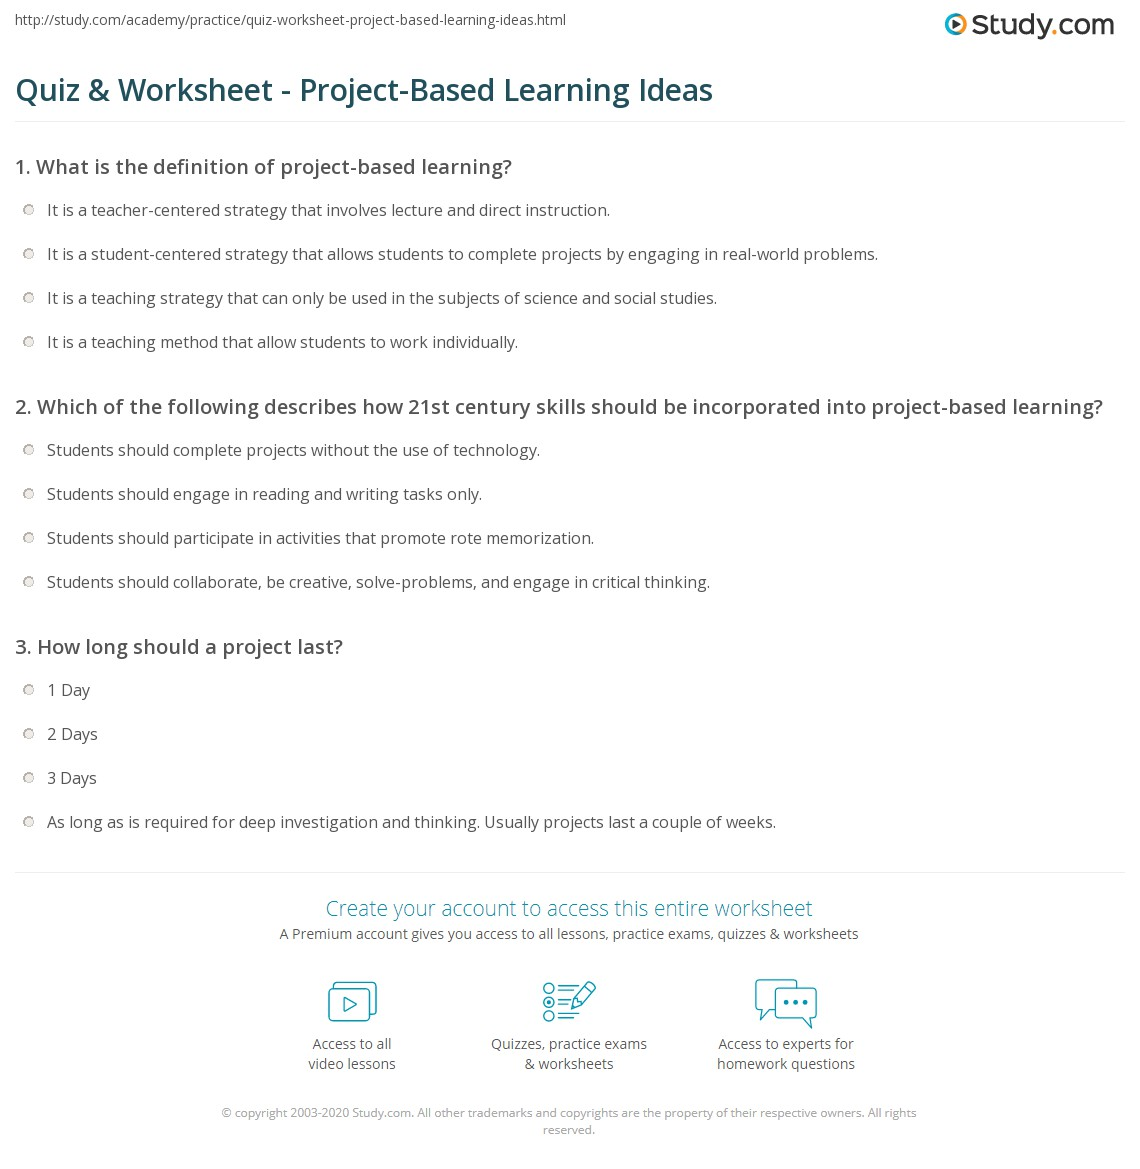 Quiz & Worksheet - Project-Based Learning Ideas | Study.com